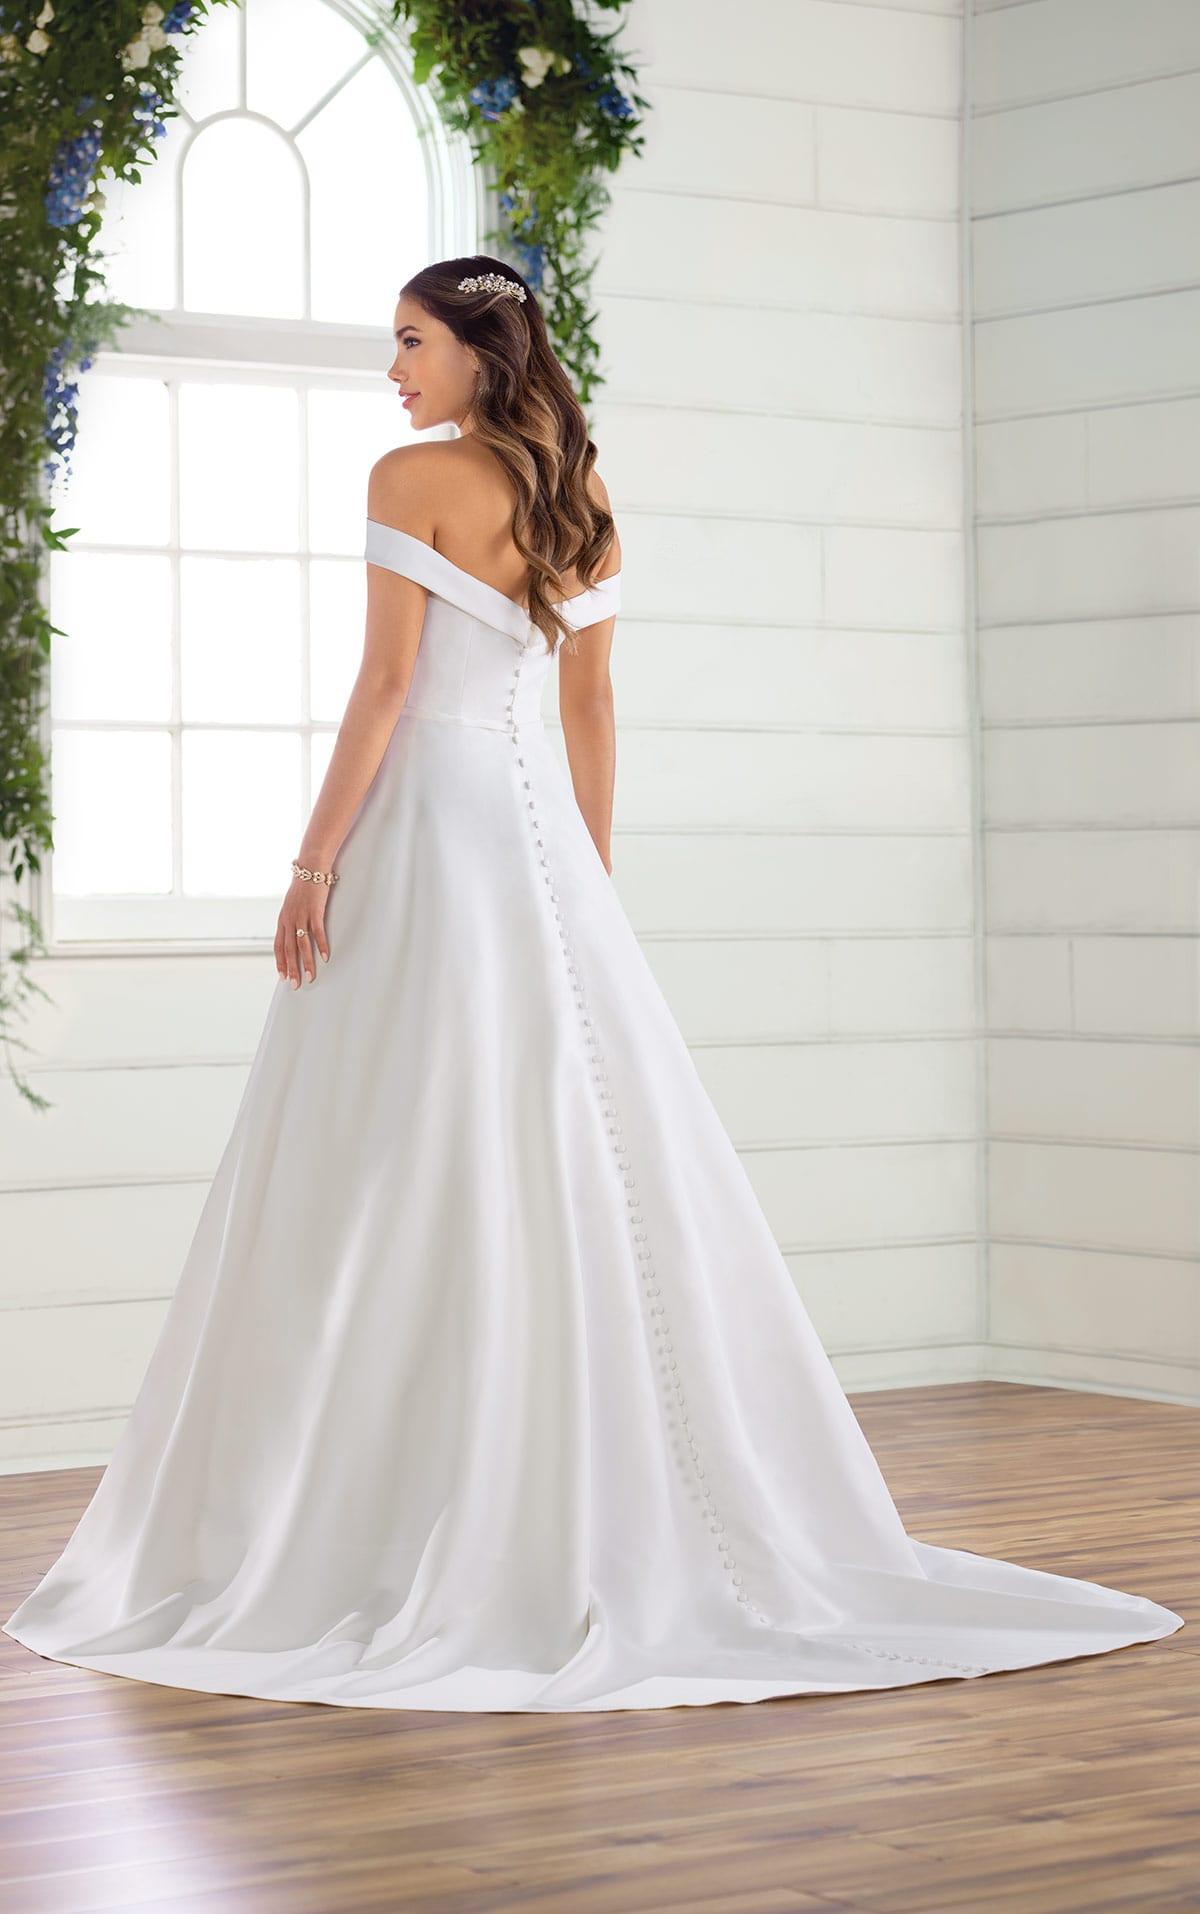 D2761-Fisher-Essense-of-Australia-Classic-Satin-Ballgown